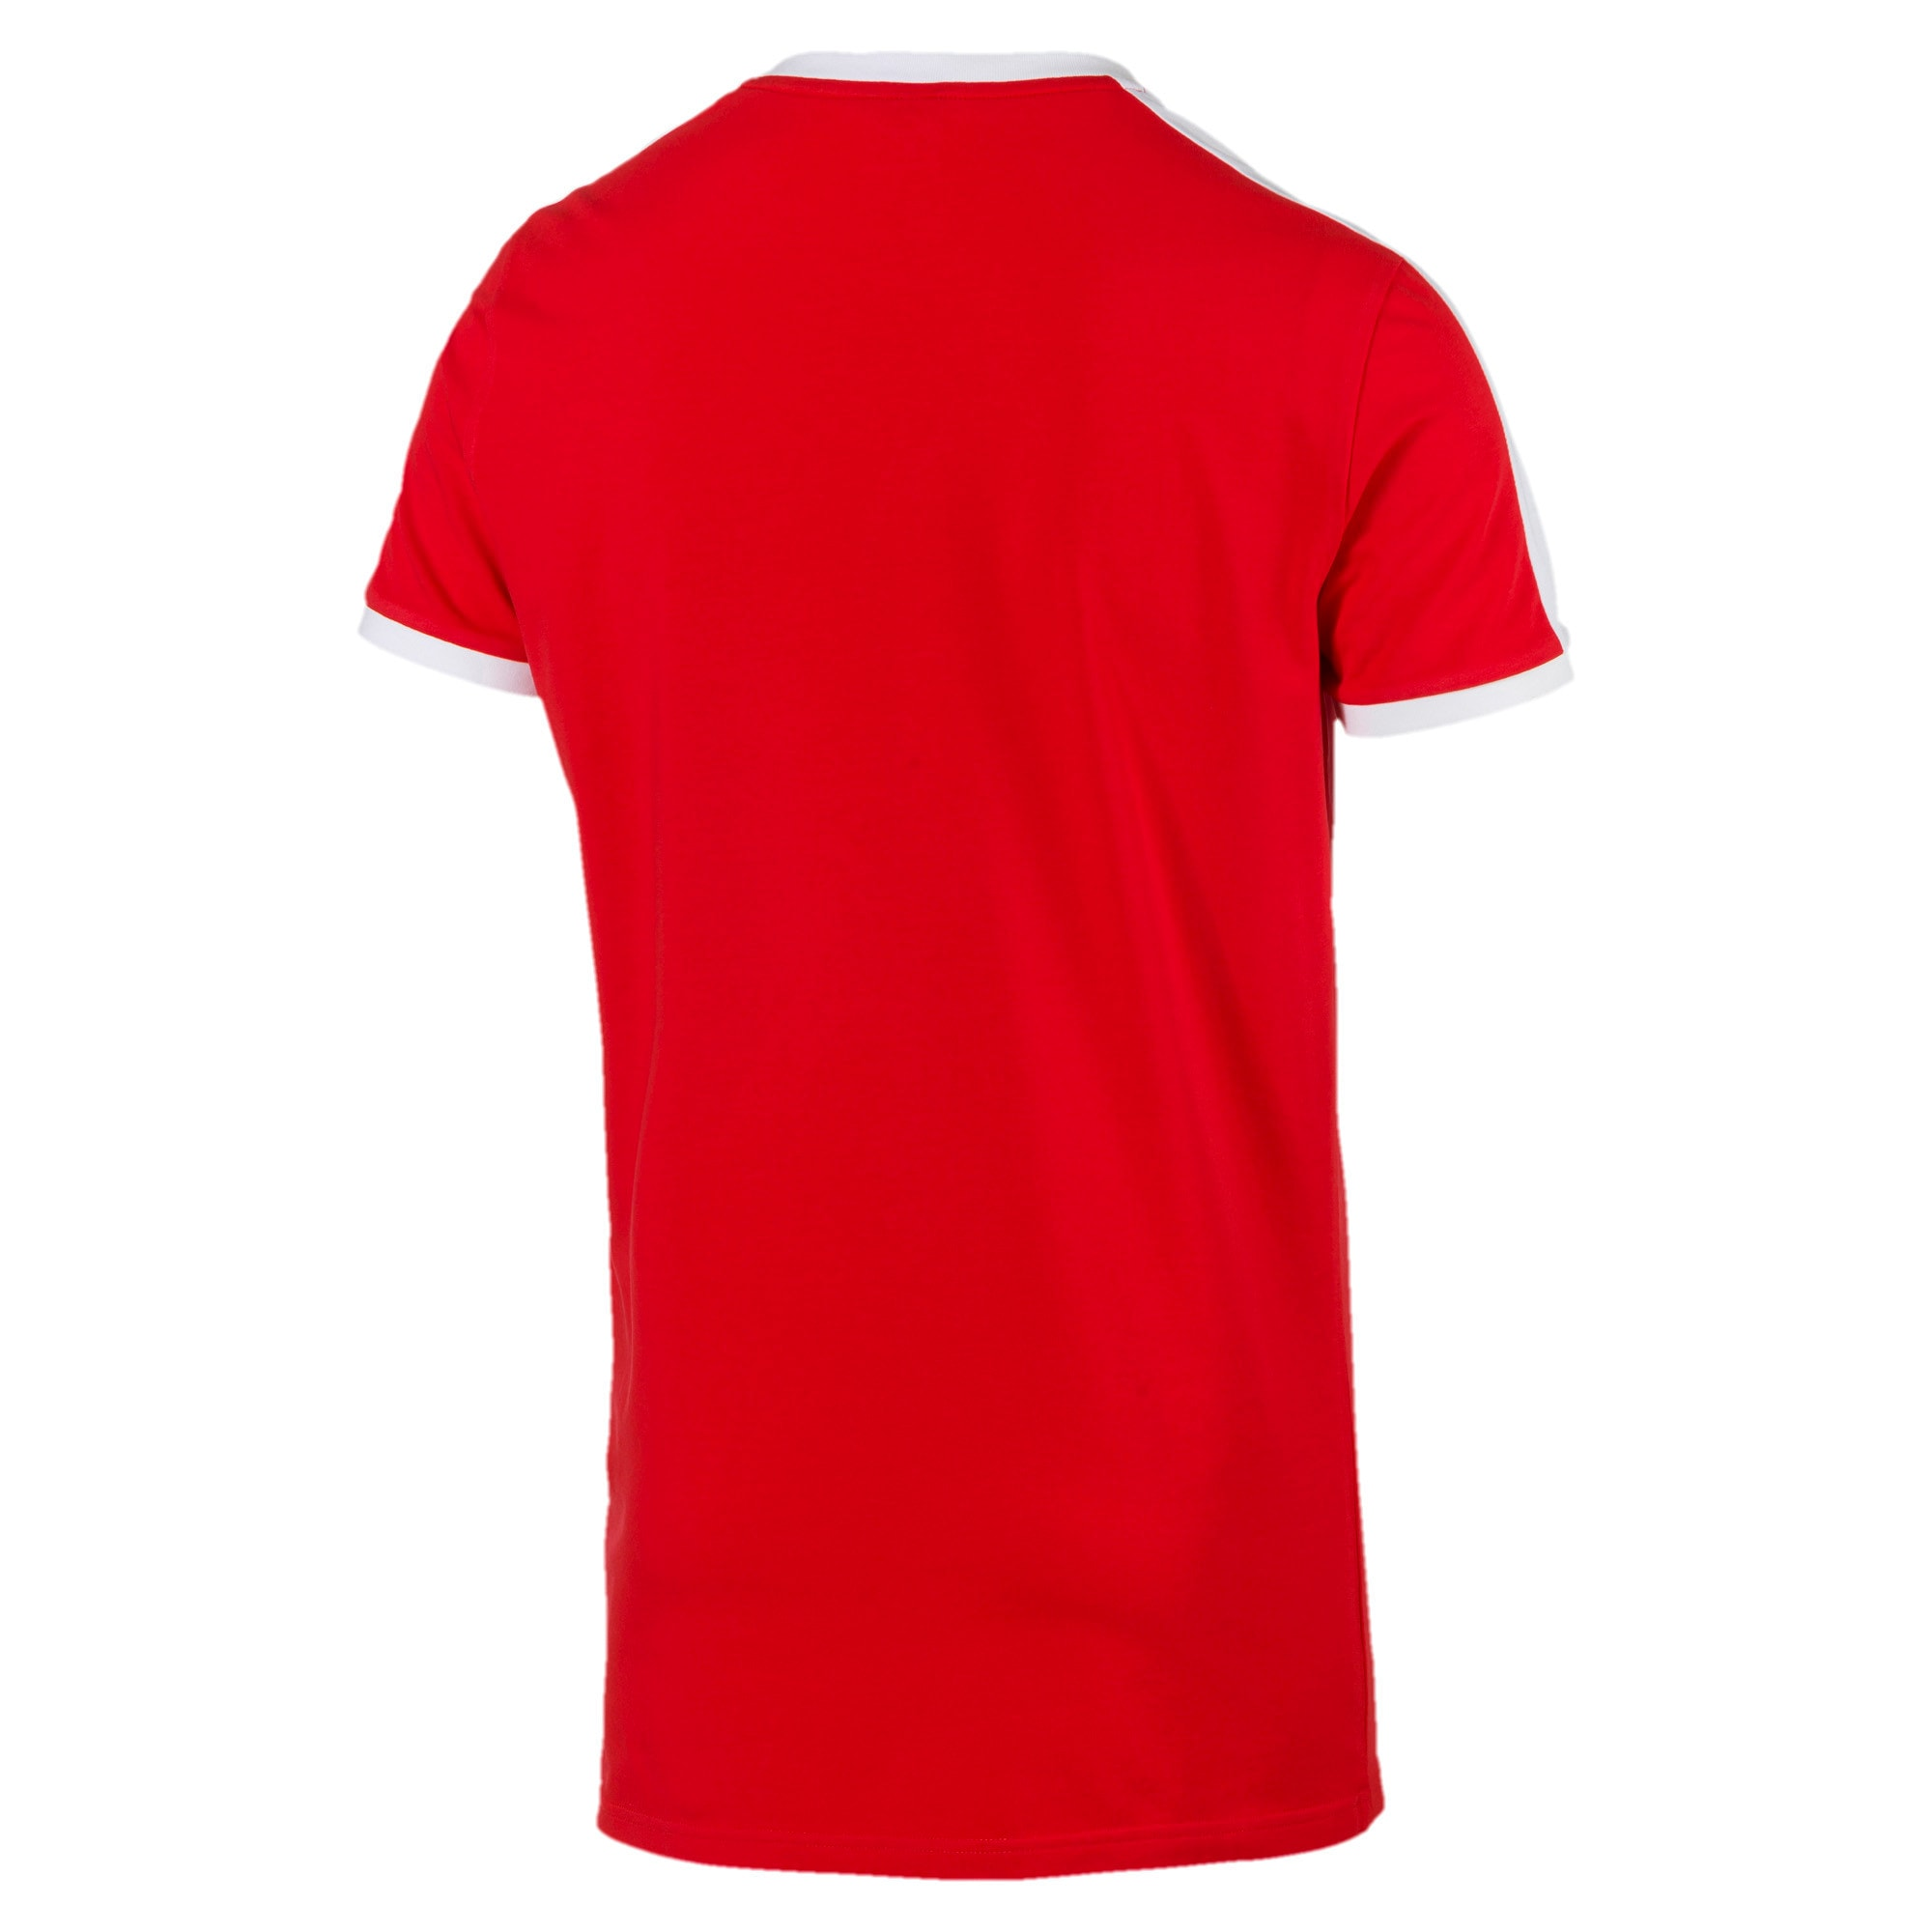 Thumbnail 5 of Iconic T7 Slim Men's Tee, High Risk Red, medium-IND